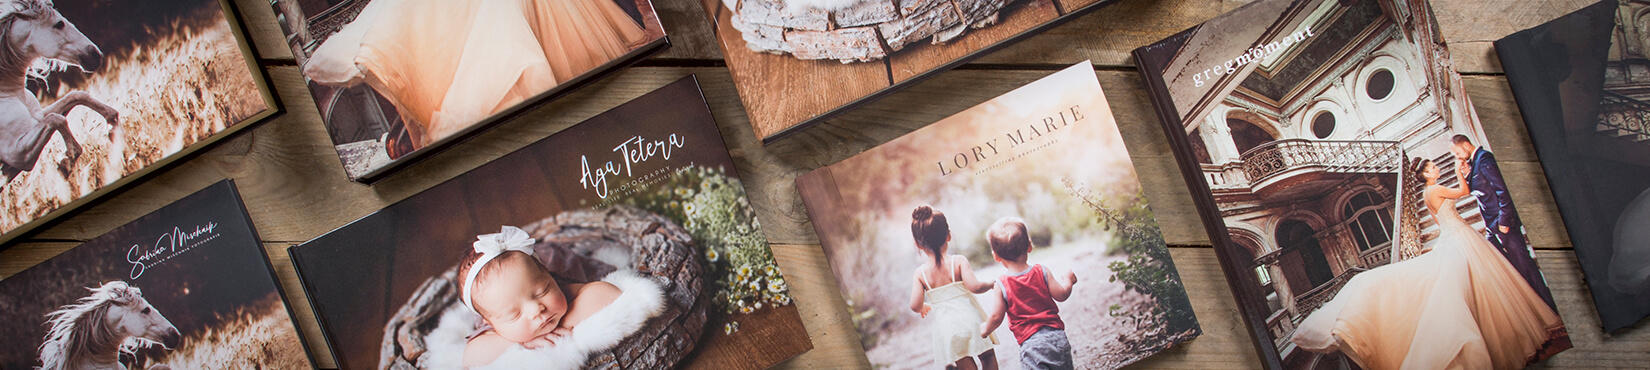 Creative 100 photo album photo book lay flat professional nphoto